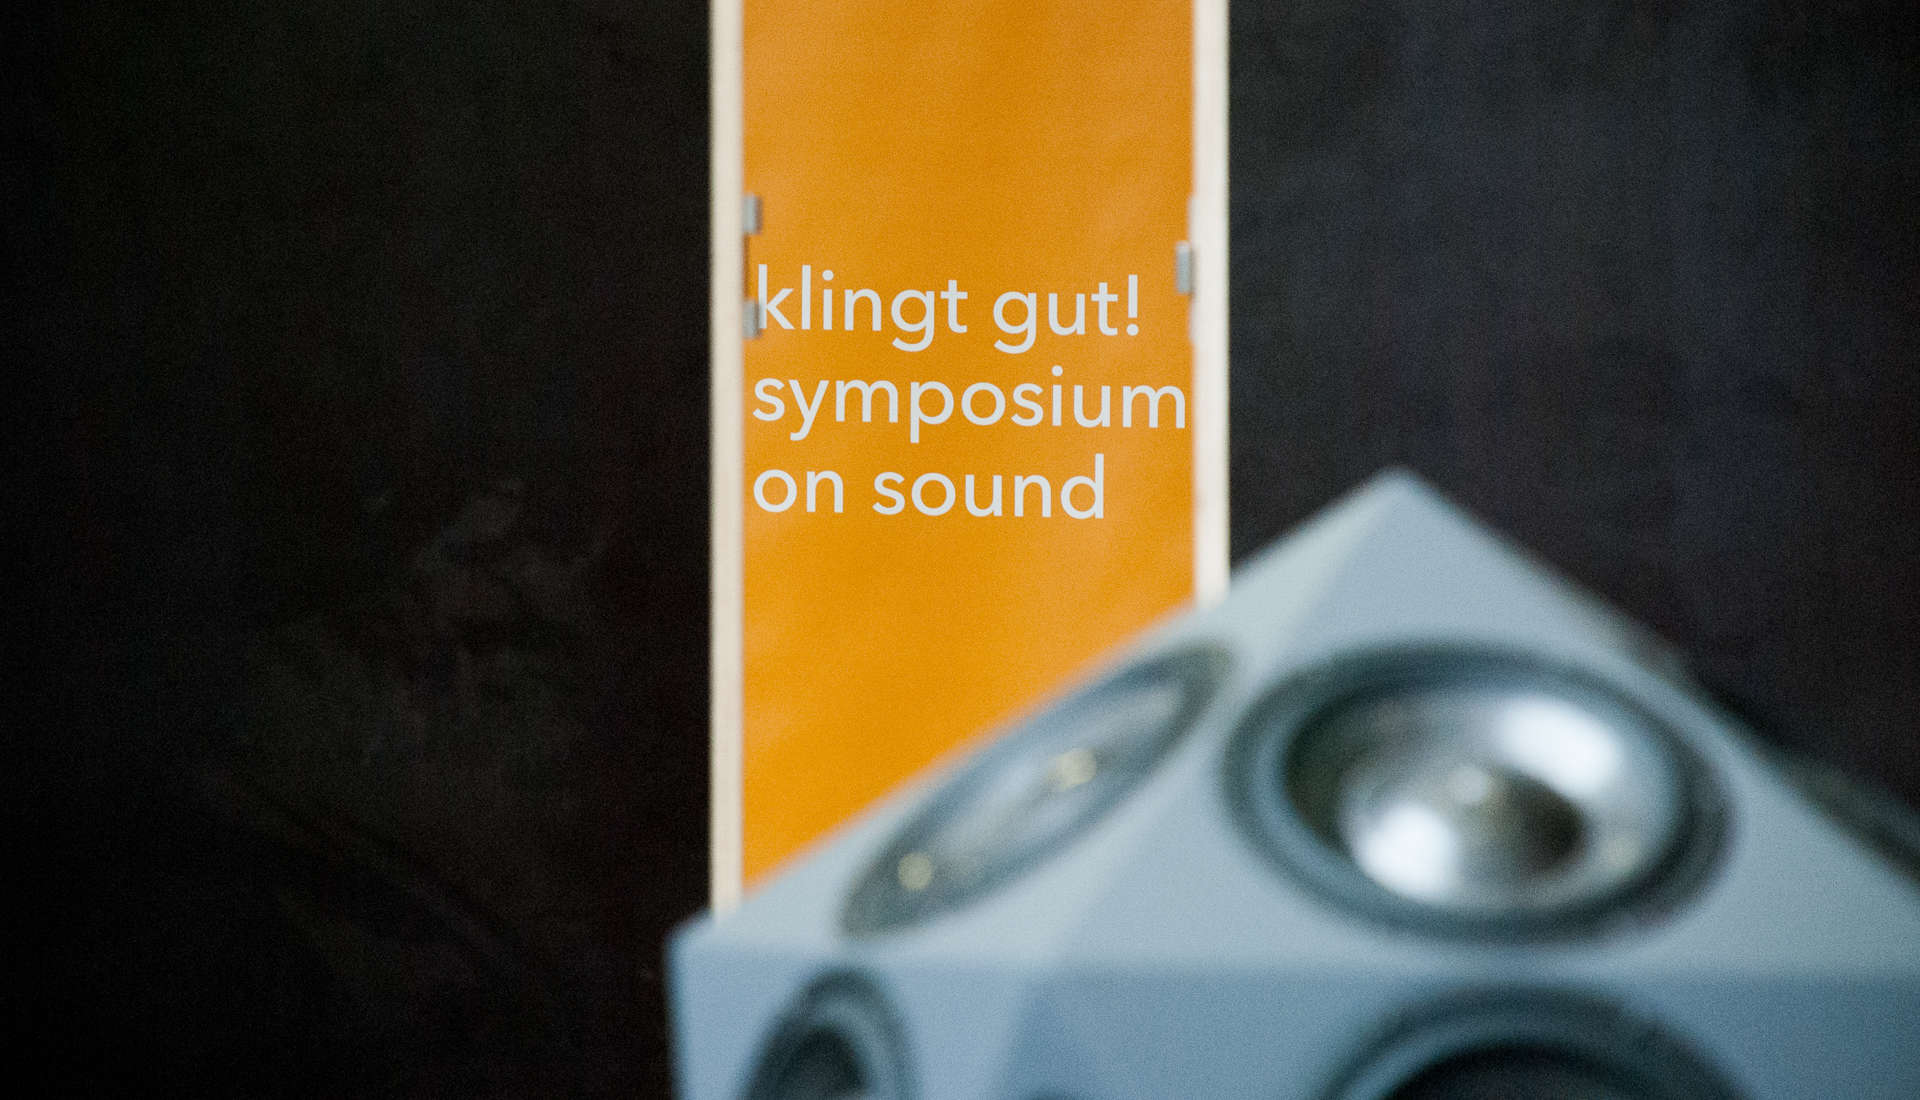 sonible IKO Tour 2017 Hamburg 4 - klingt gut! Symposium